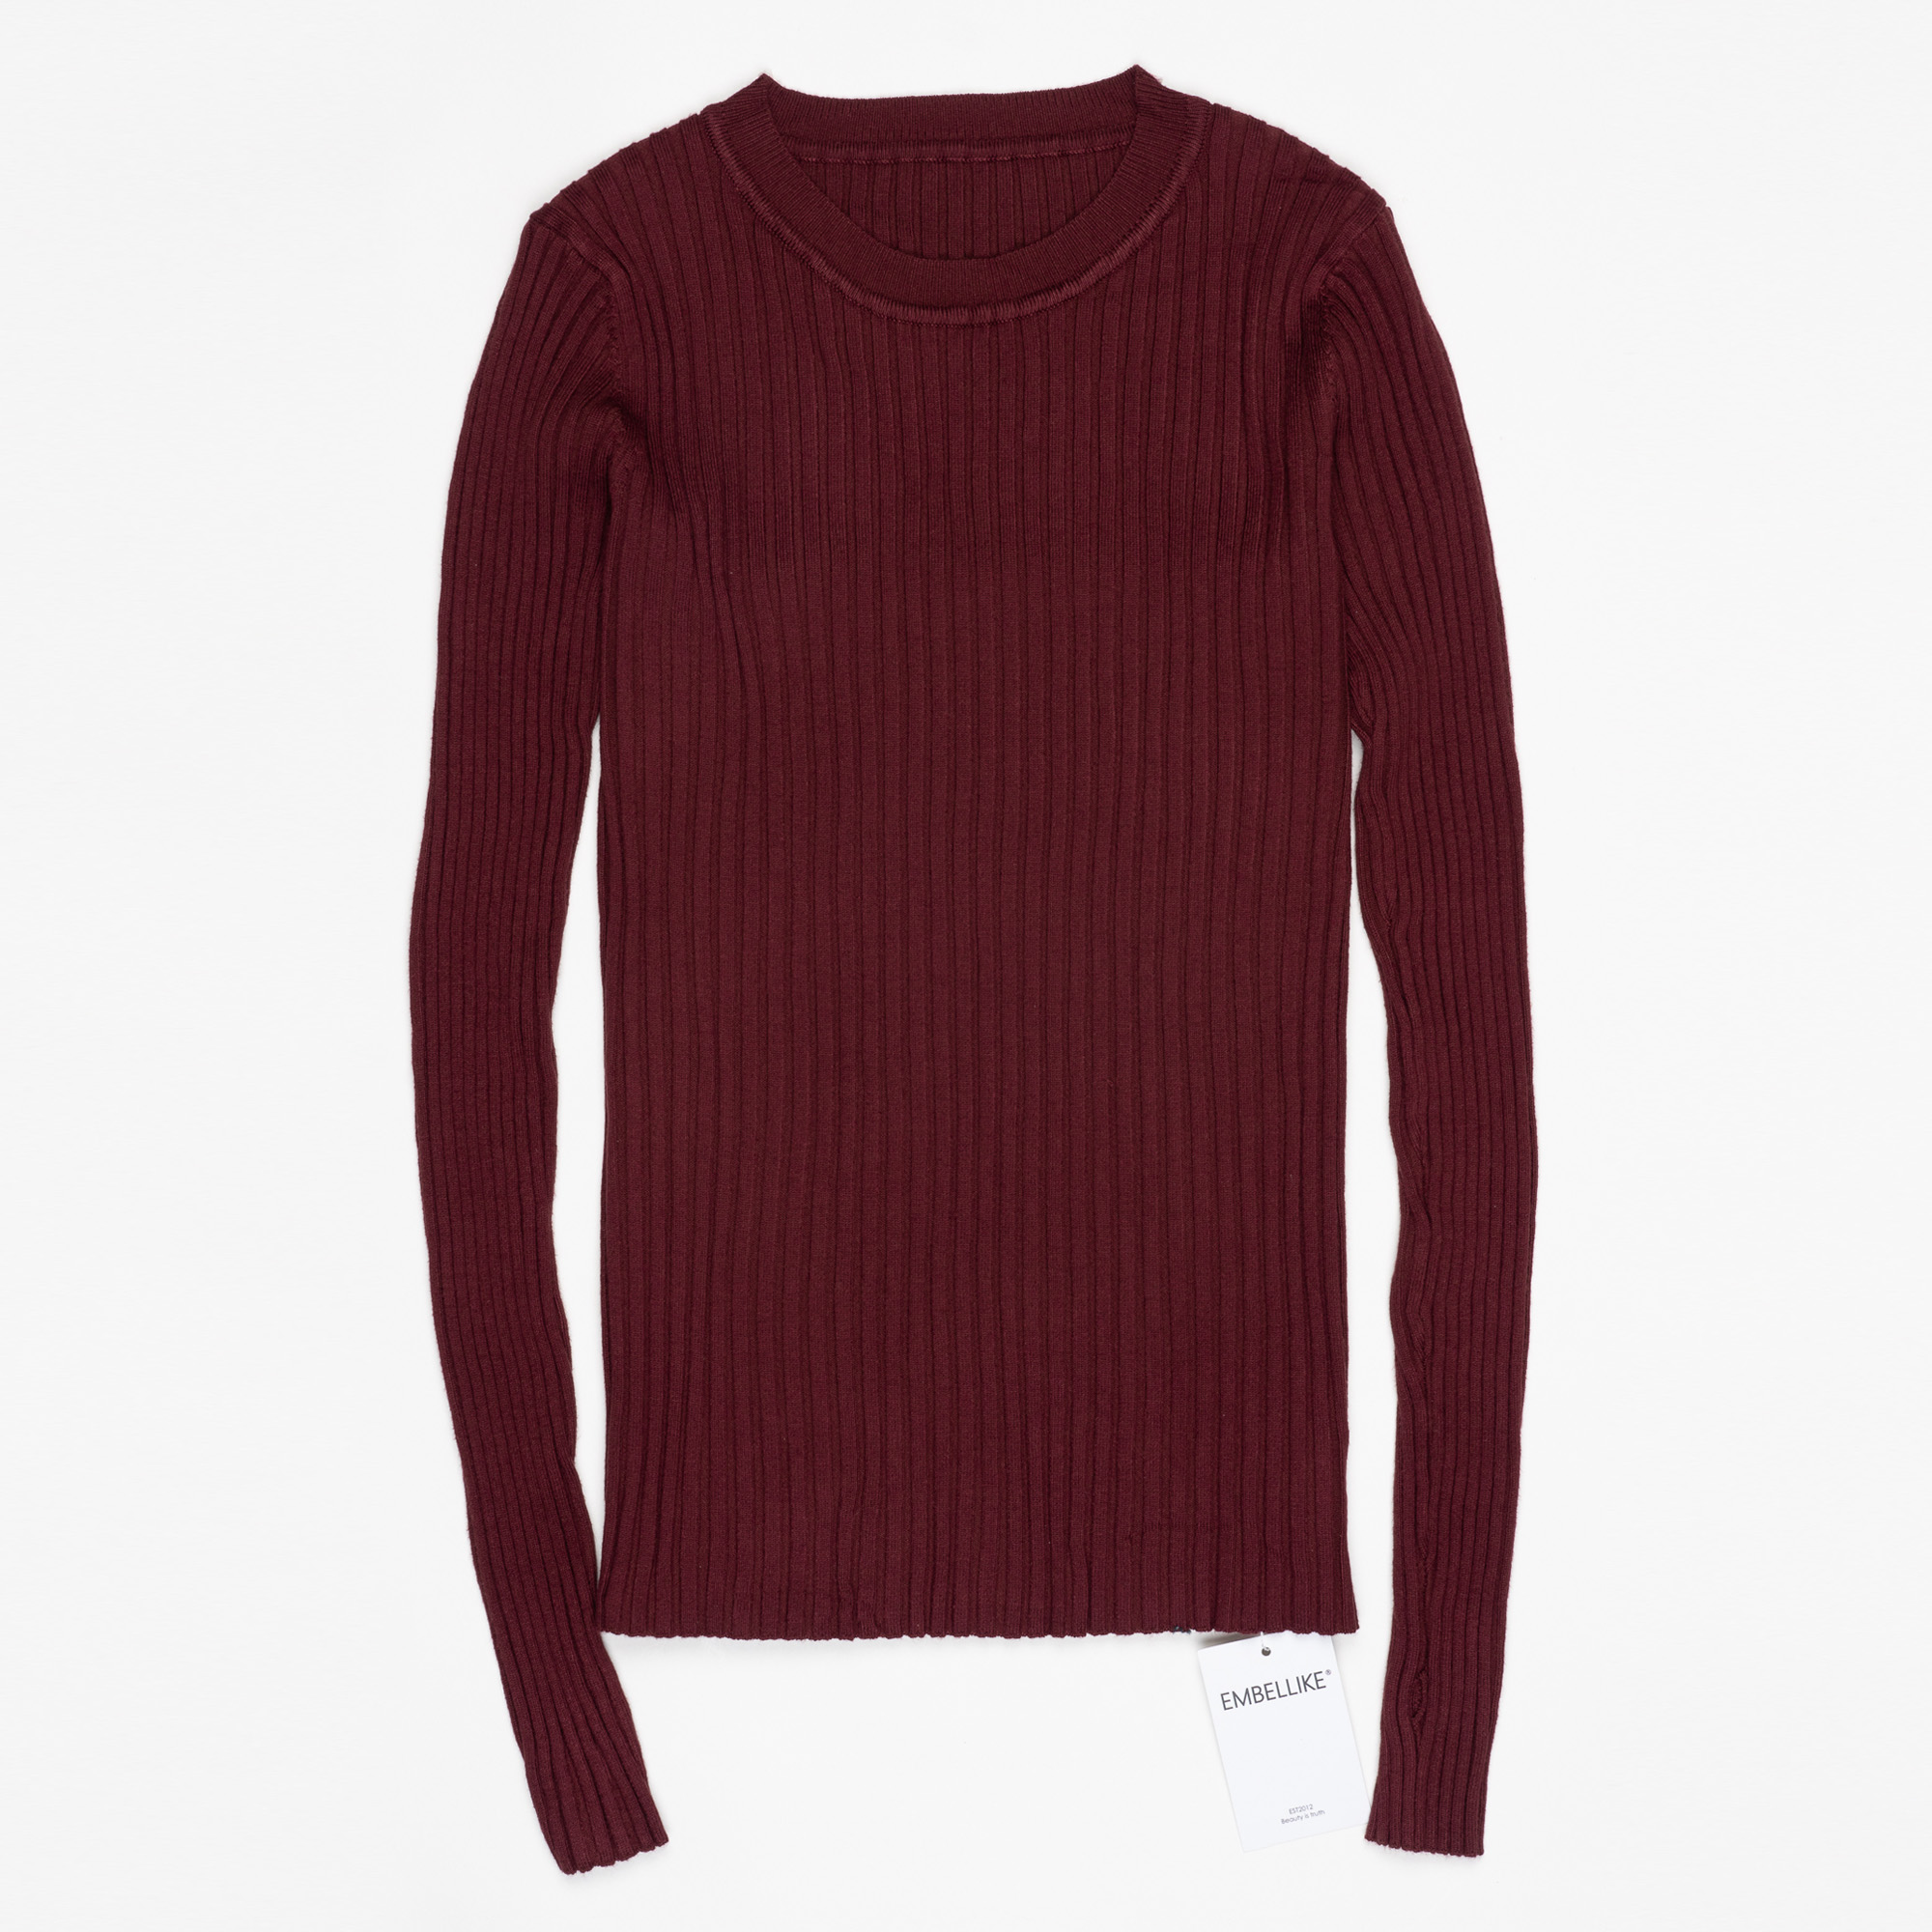 Women Sweater Pullover Basic Ribbed Sweaters Cotton Tops Knitted Solid Crew Neck With Thumb Hole 13